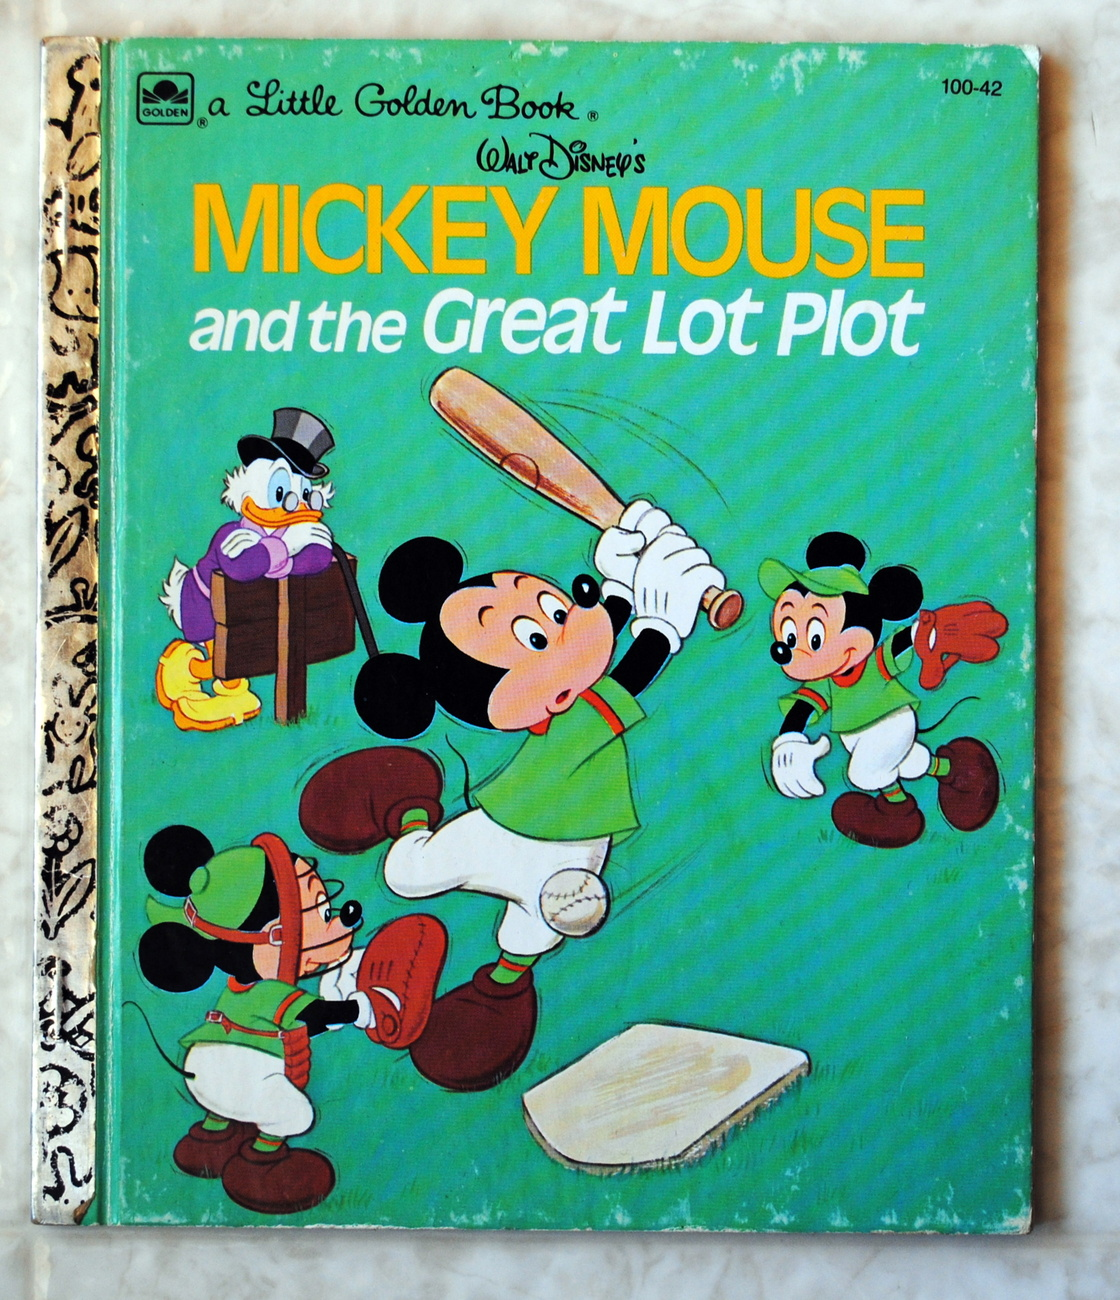 Mickey Mouse and the Great Lot Plot